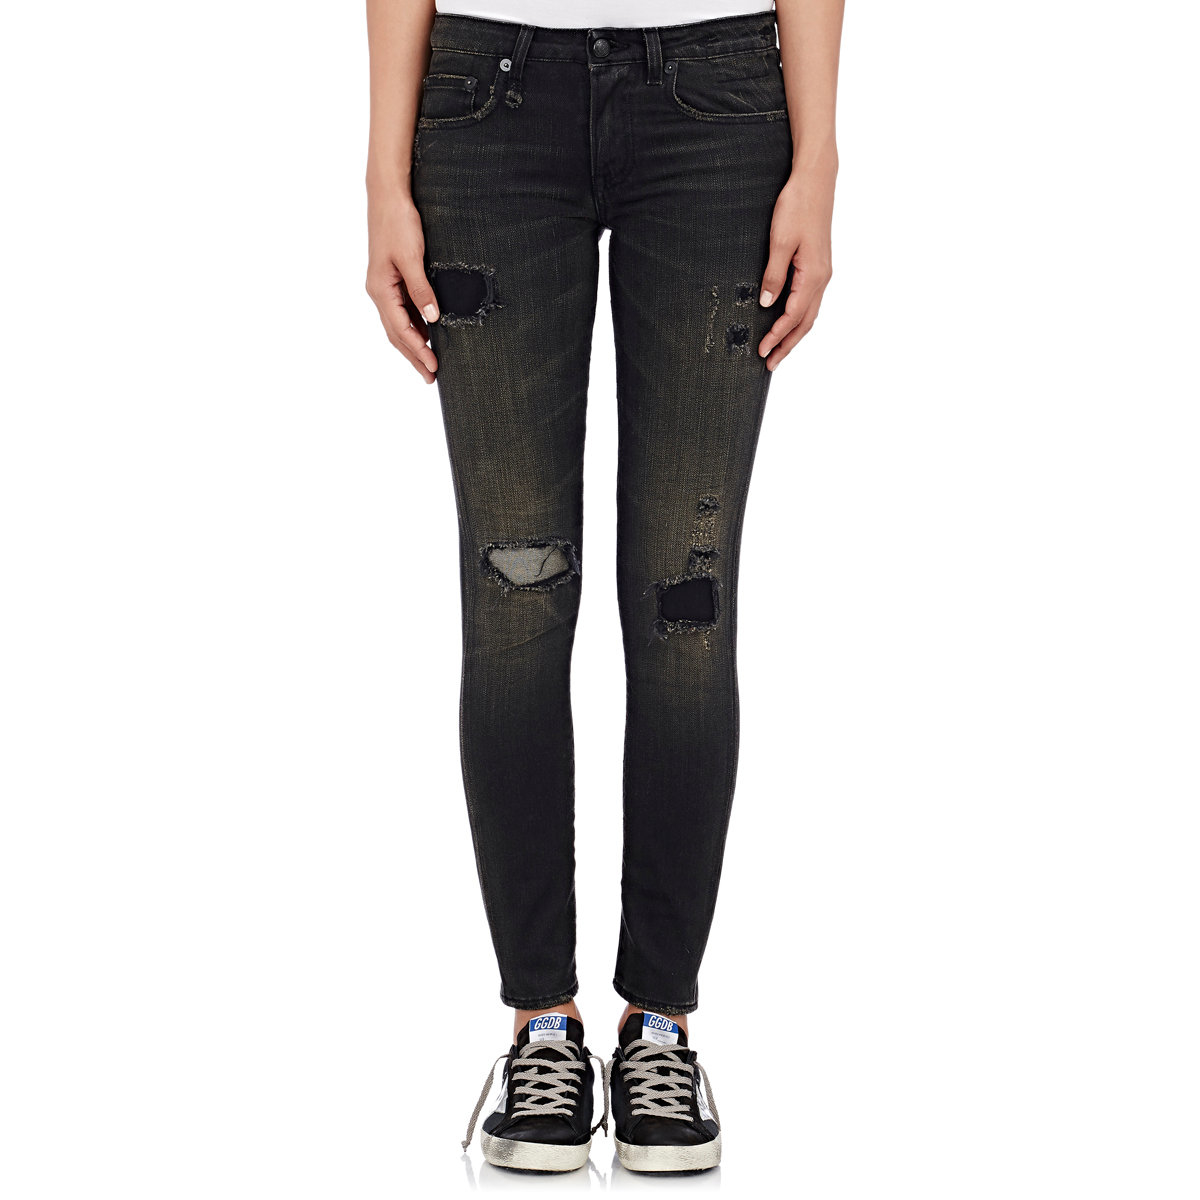 Black skinny jeans with all over scratches and tears. LOVER BRAND FASHION High Waisted-Rise Ladies Colored Denim Stretch Skinny Destroyed Ripped Distressed Jeans for Women by LOVER BRAND FASHION.